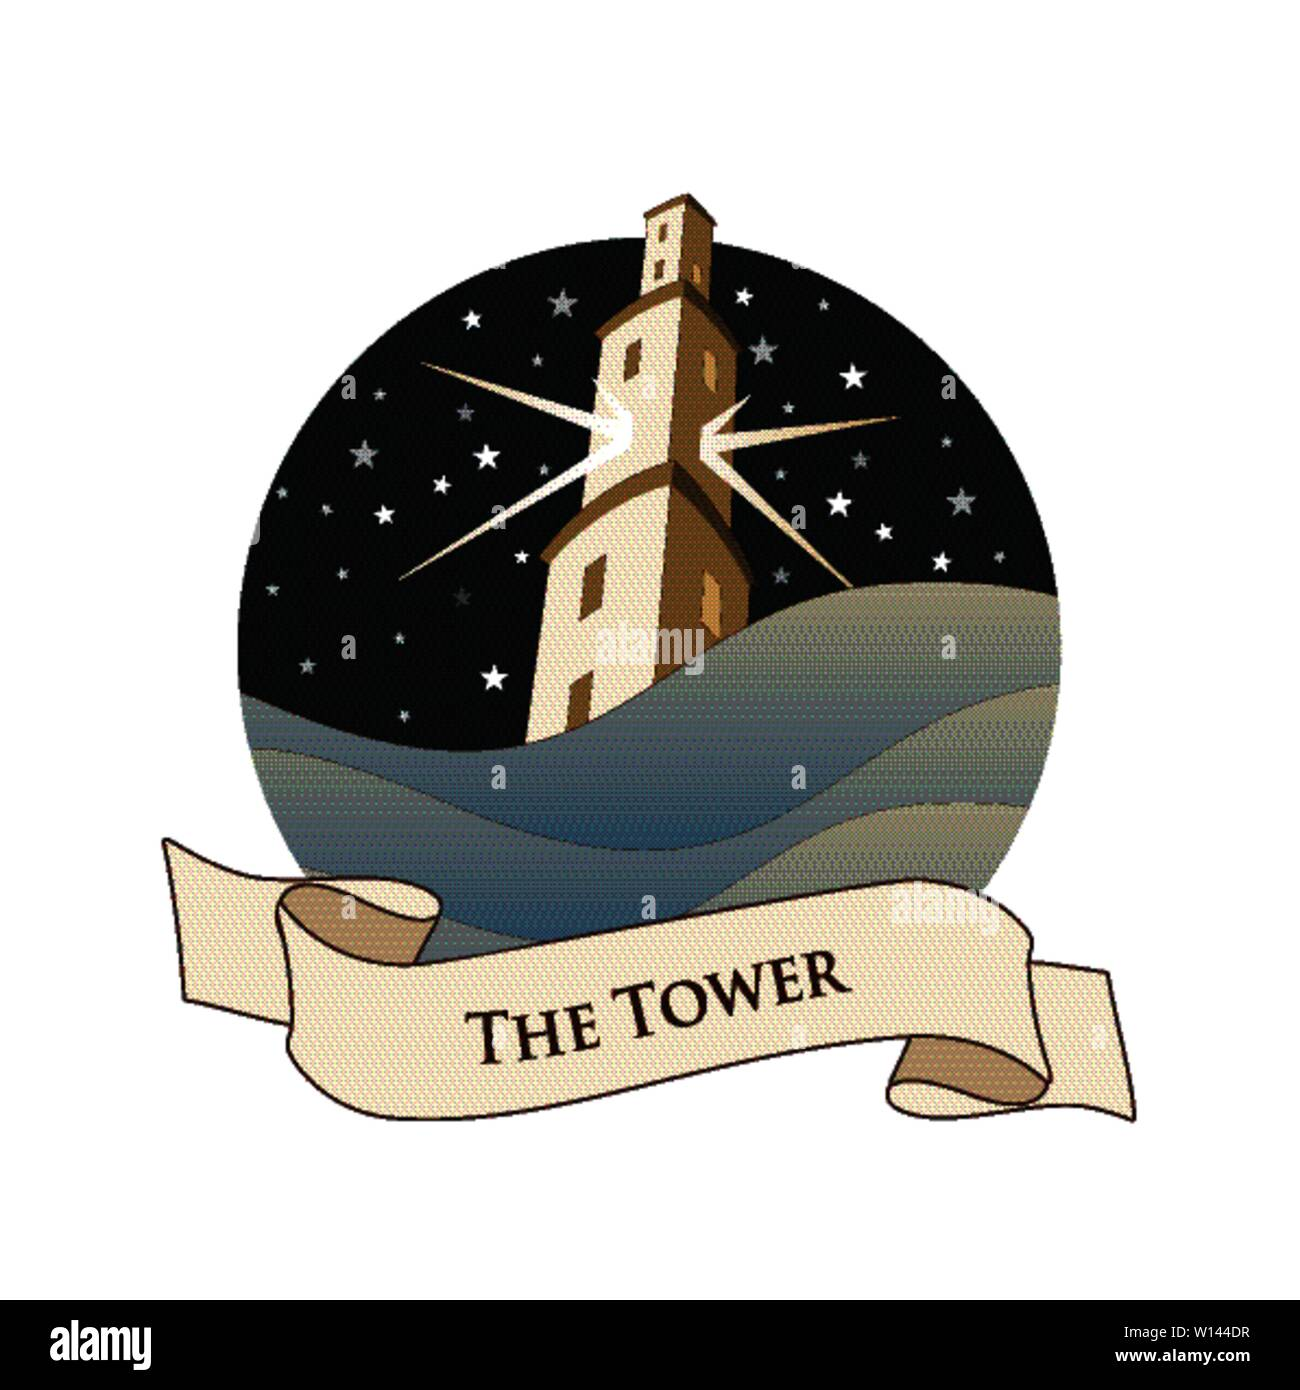 Major Arcana Emblem Tarot Card. The Tower. Large tower over raging sea, over a starry night sky, isolated on white background - Stock Image